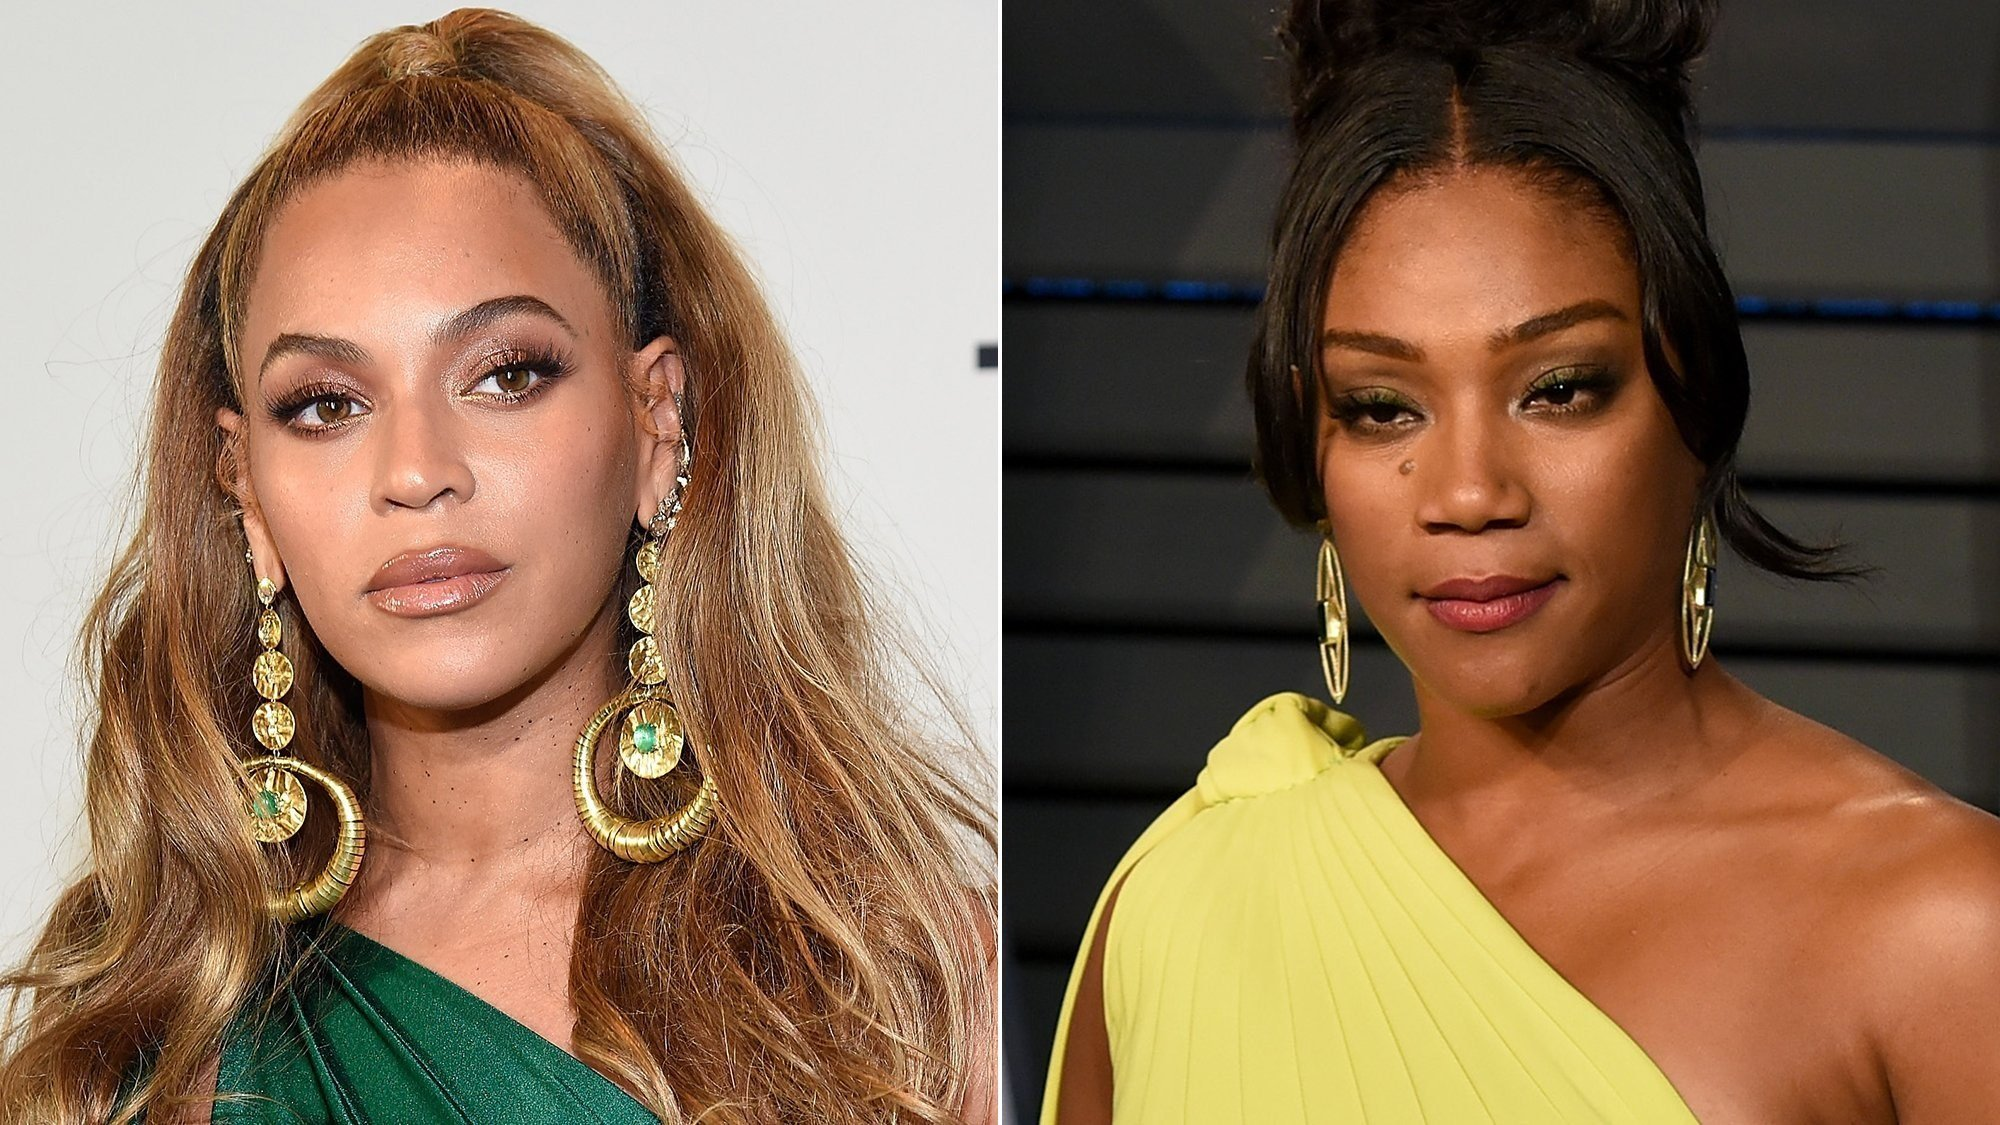 When Tiffany Haddish told the world that an actress allegedly bit Beyoncé's face at a party last December, inquiring minds went into overdrive trying to figure out who Haddish was referring to.